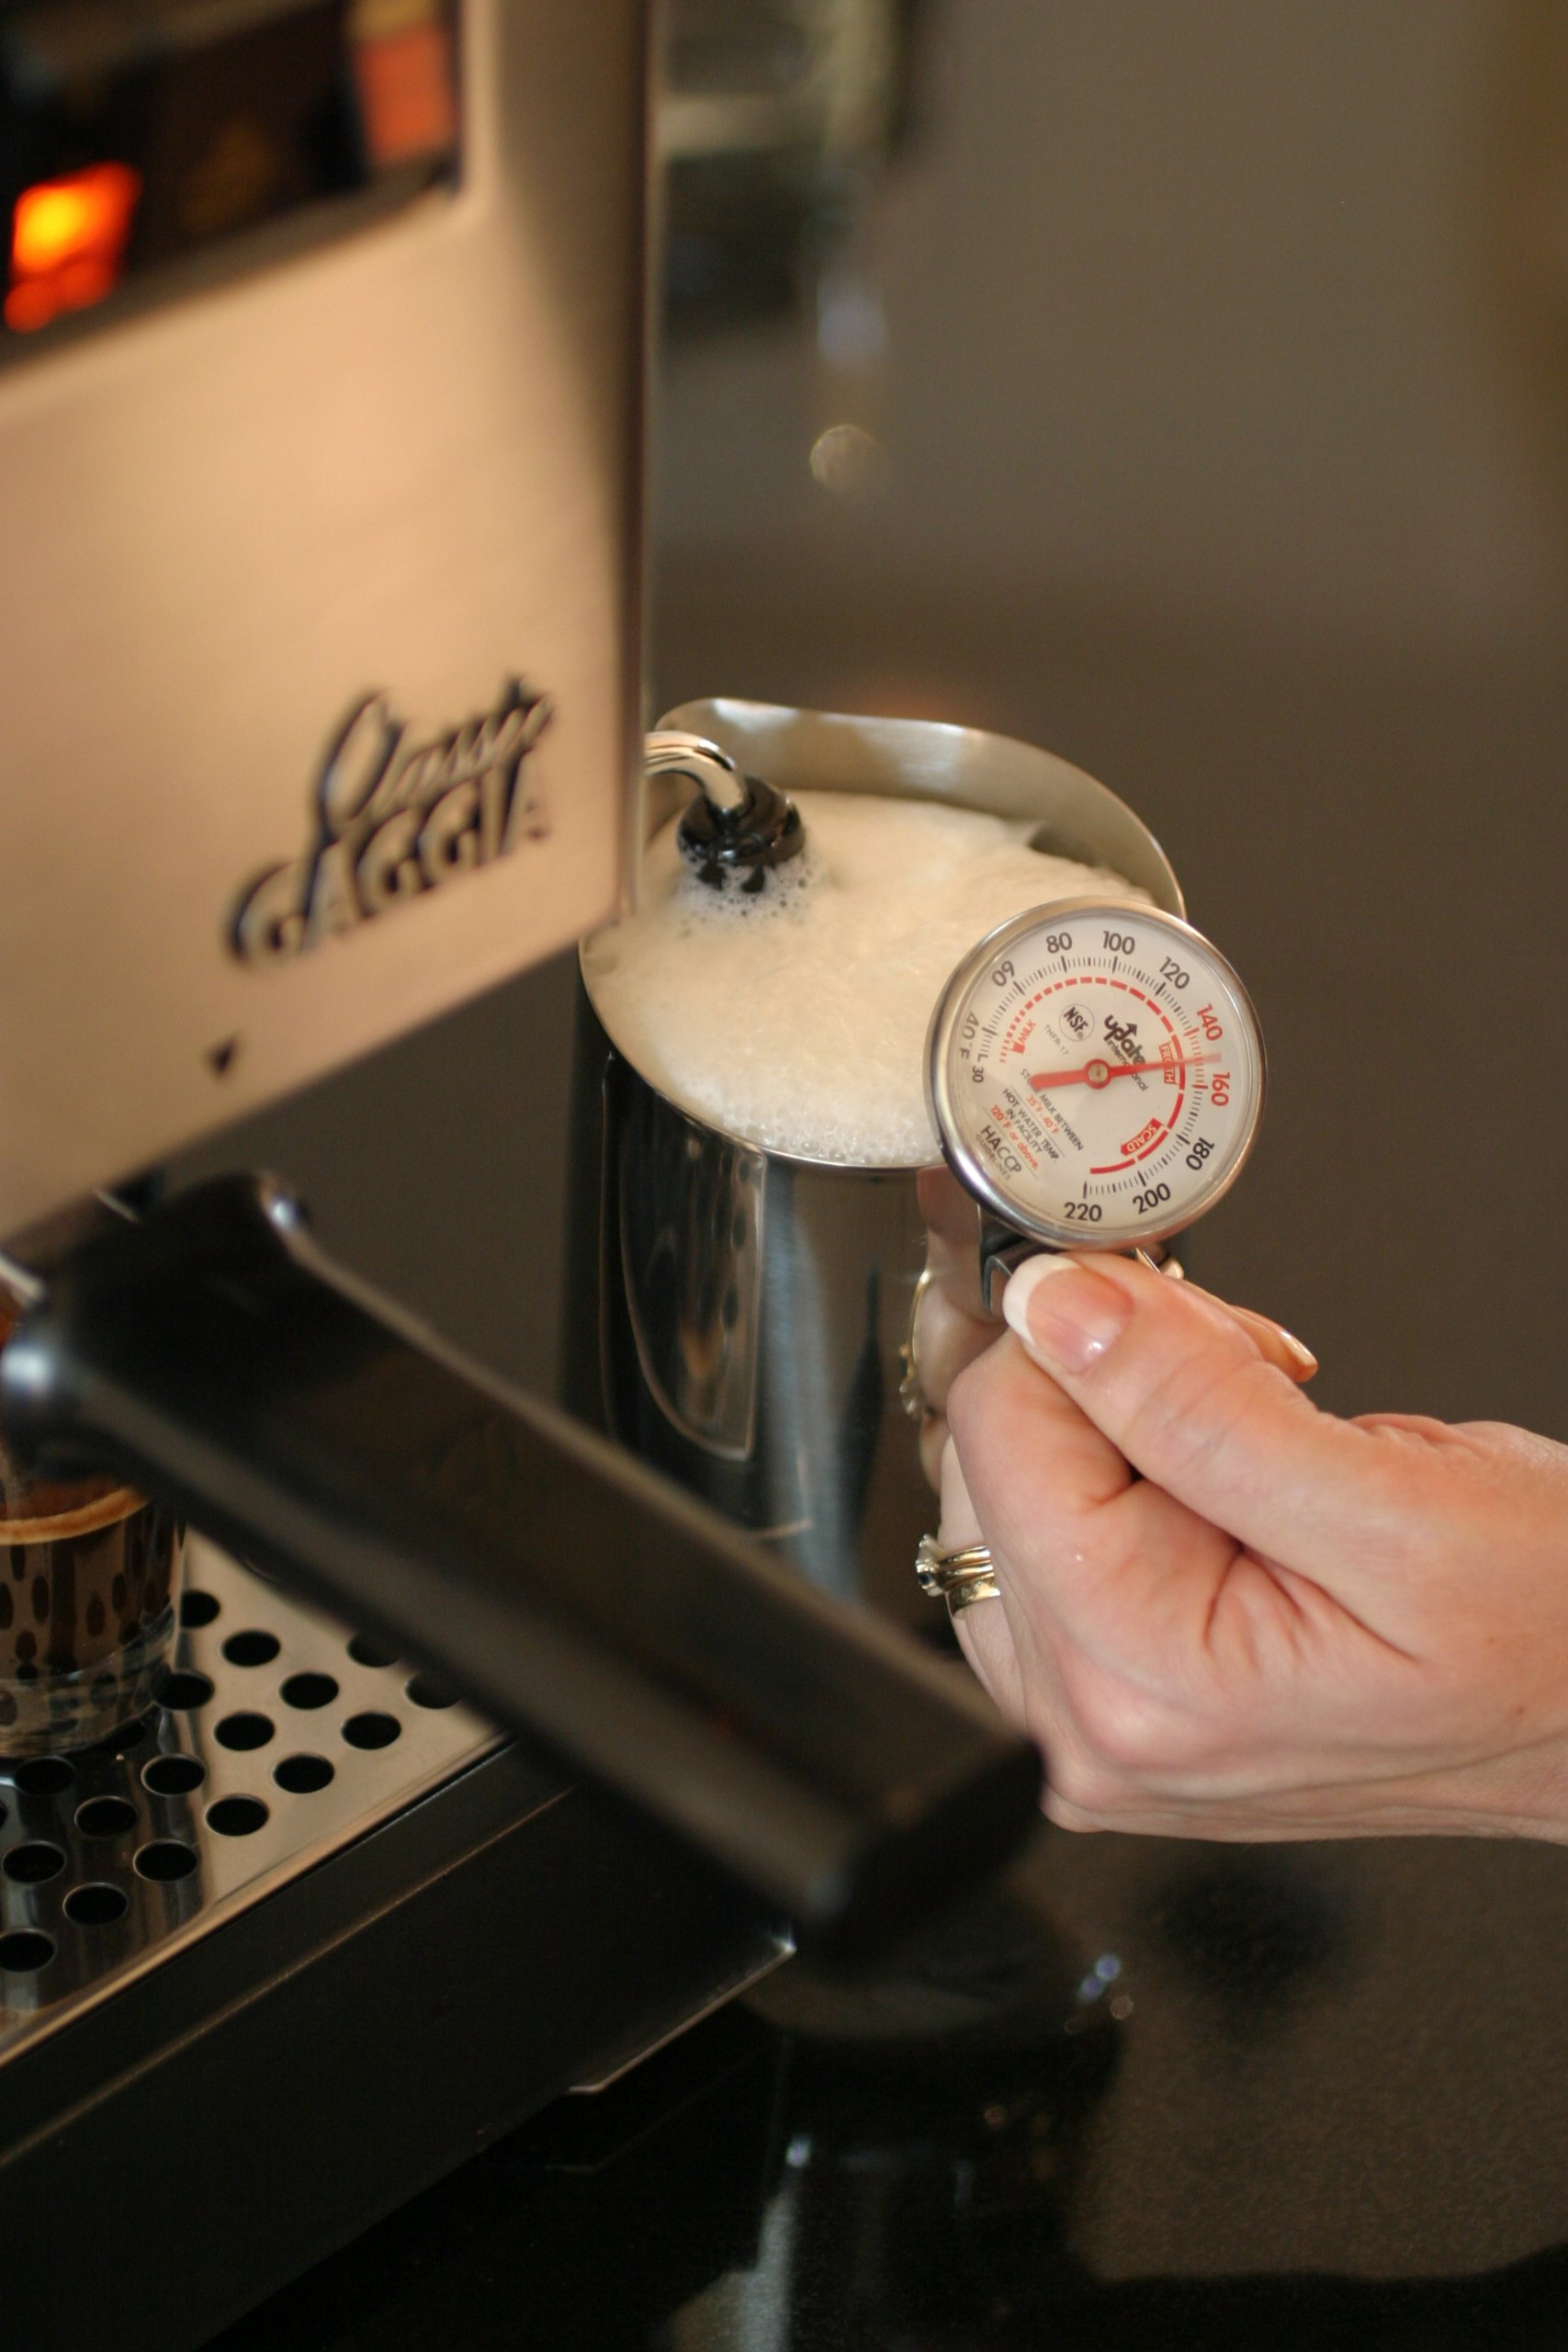 Gaggia Classic Semi-Automatic Espresso Maker. Pannarello Wand for Latte and Cappuccino Frothing. Brews for Both Single and Double Shots. by Gaggia (Image #6)